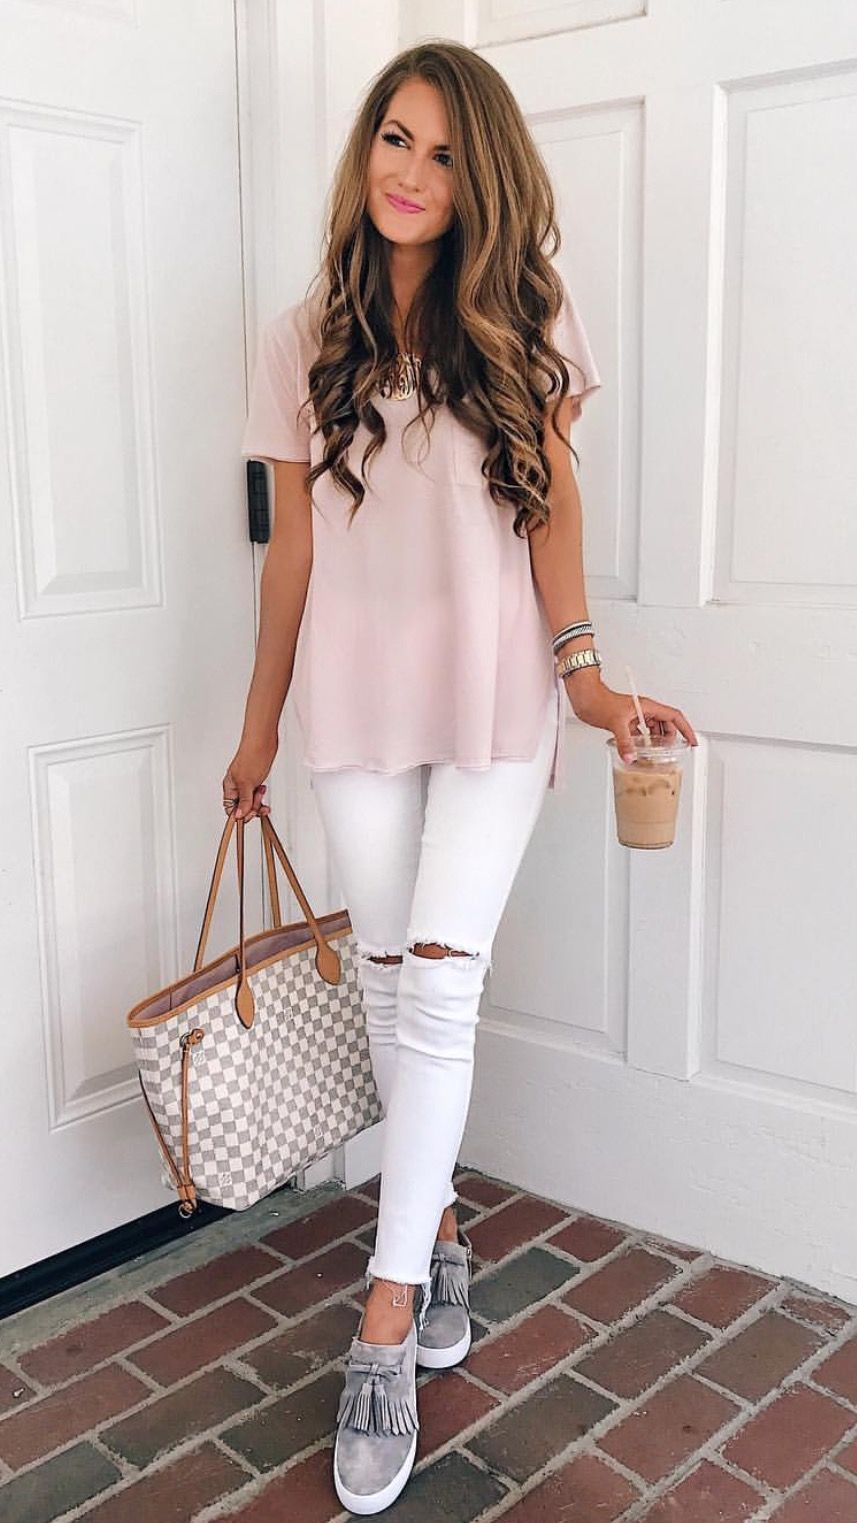 Pin By 𝐣𝐨𝐚𝐧 𝐩𝐚𝐝𝐨𝐧 On My Style Cool Summer Outfits Fashion Clothes